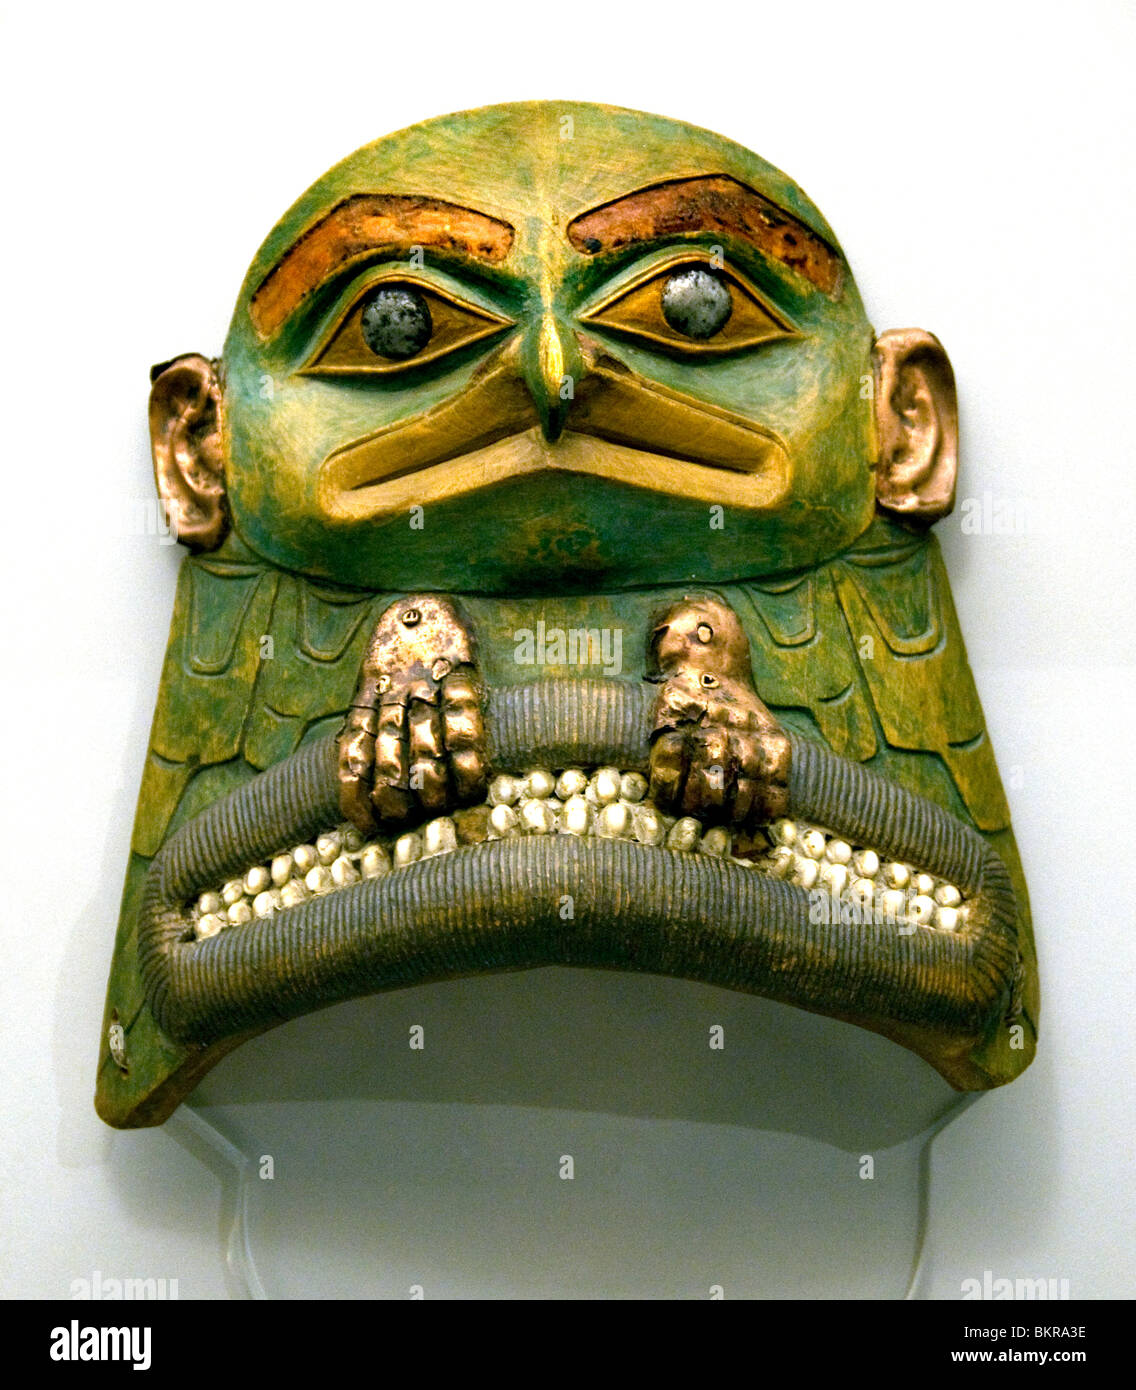 Tlingit Indians 18 Cent  North America face mask with lucida male spirit articulated by the shaman in their actions - Stock Image